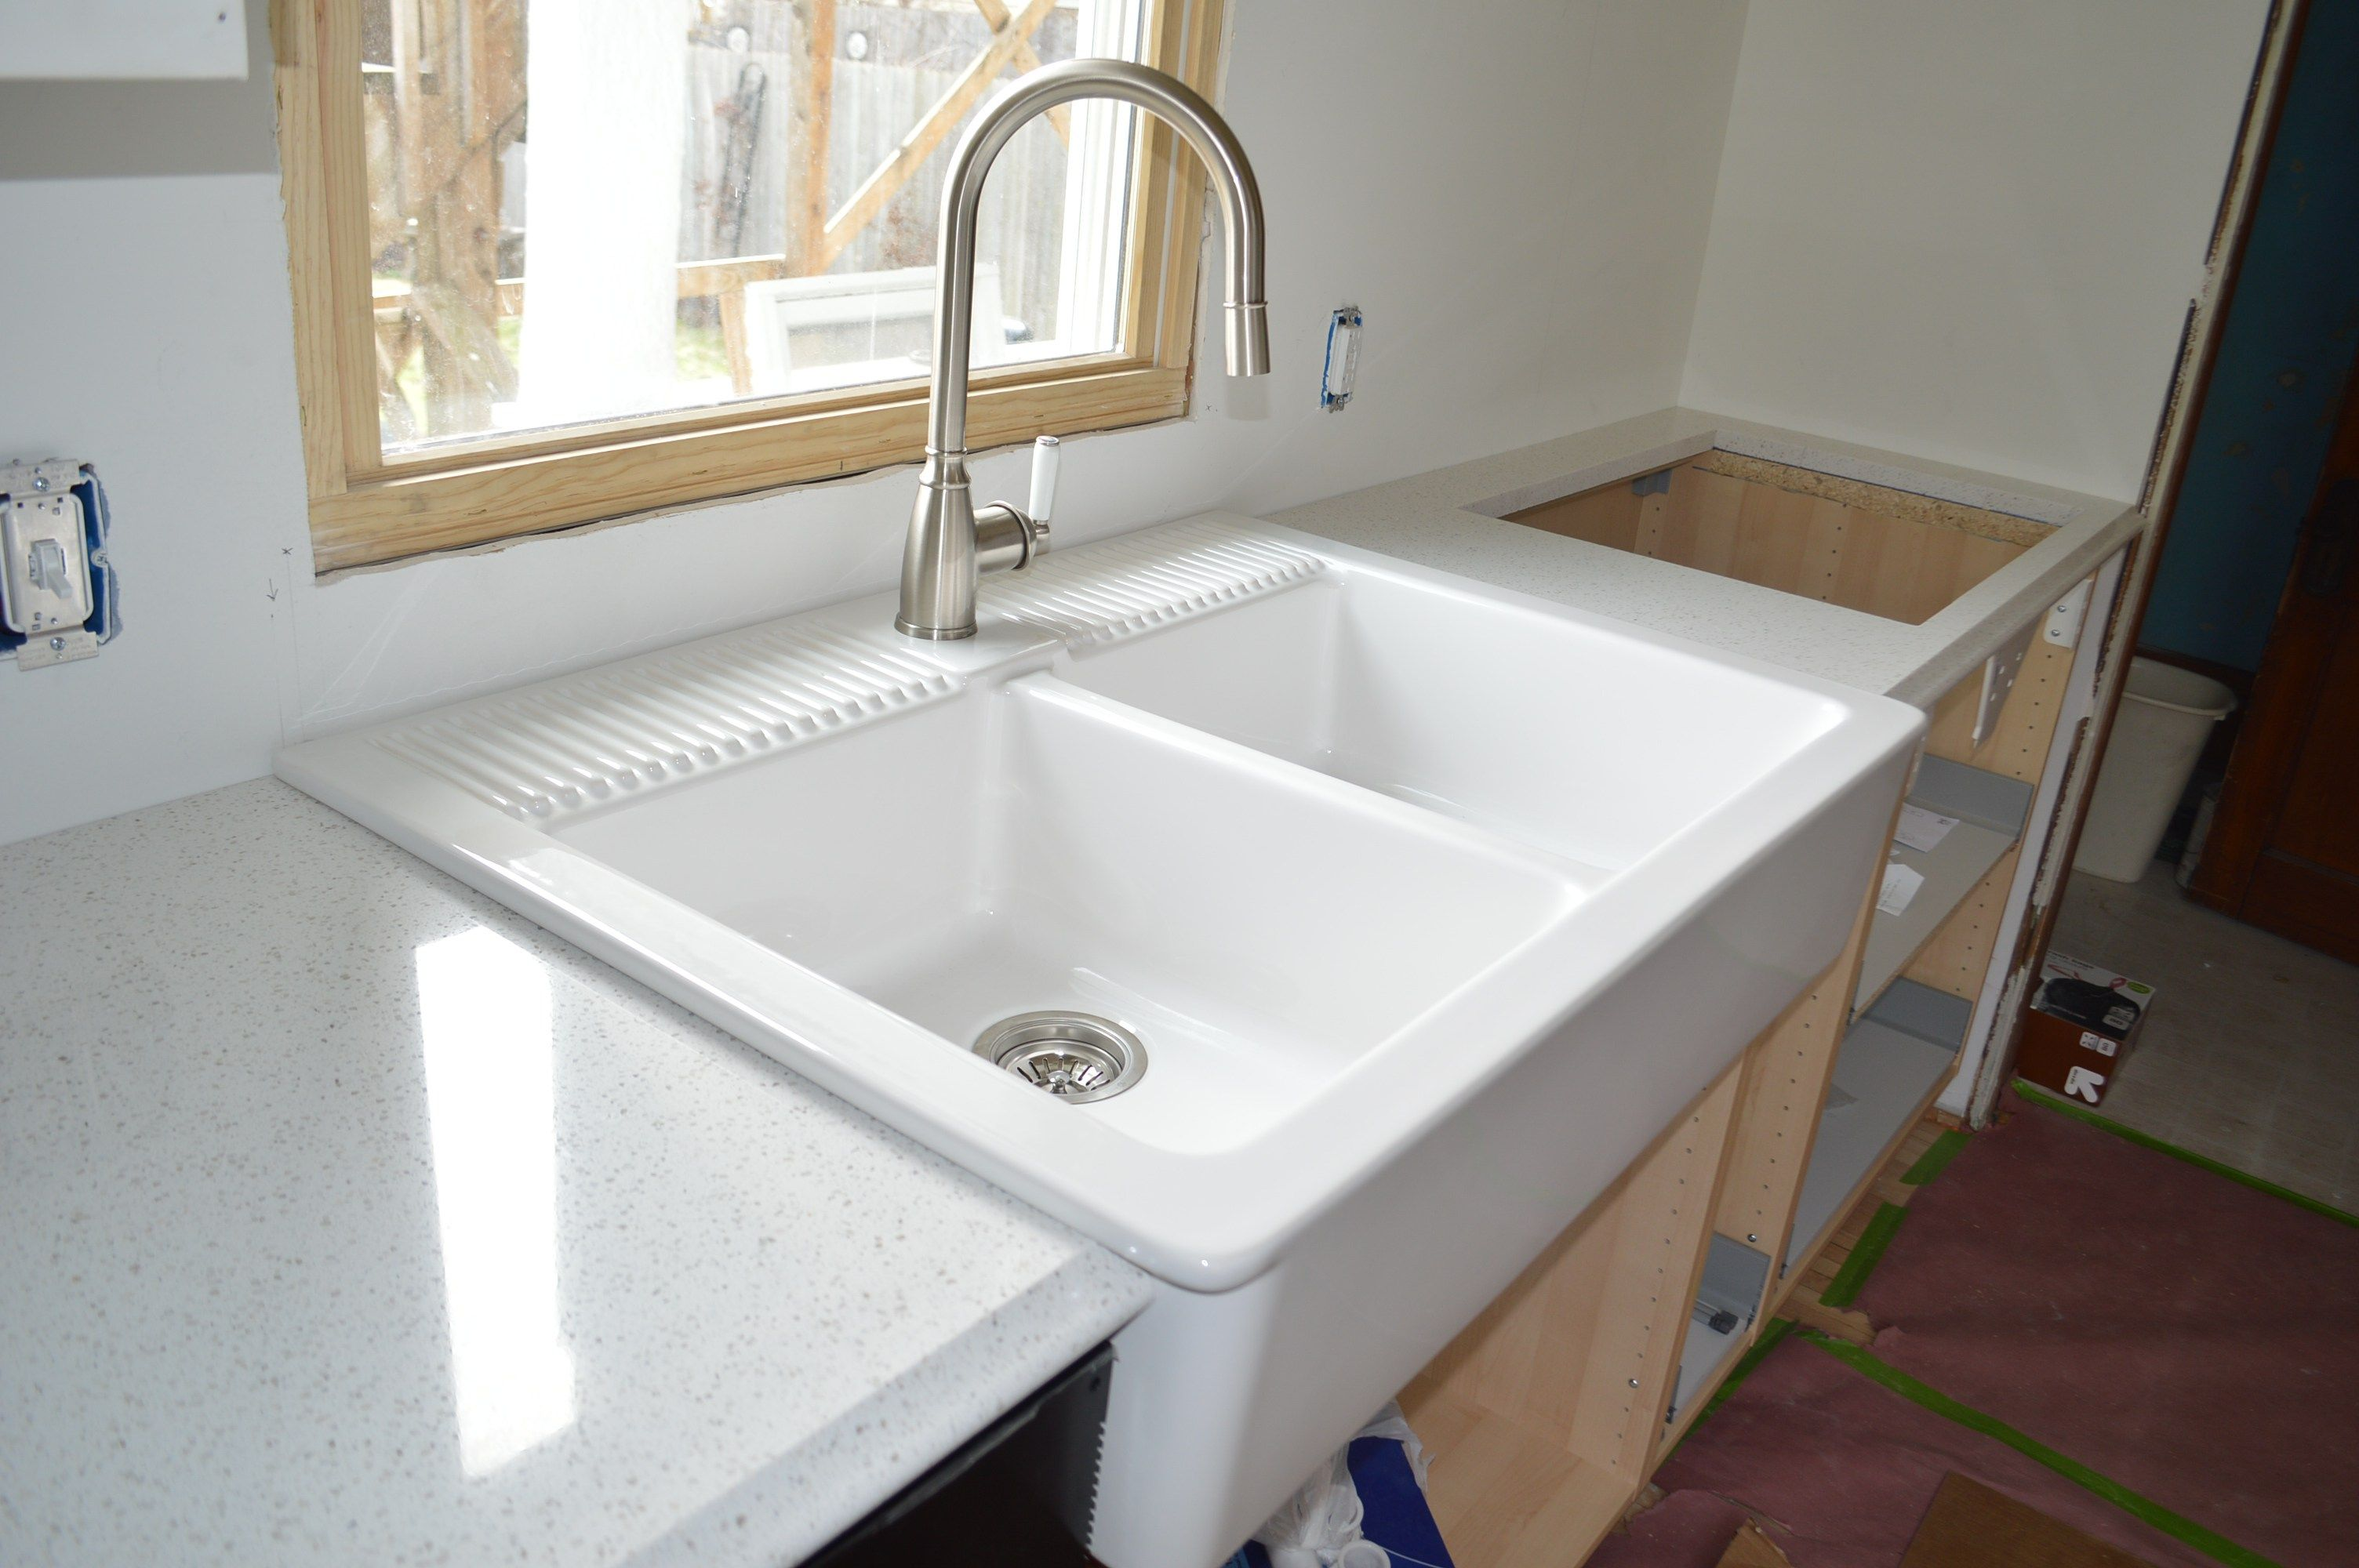 This Sink Actually Sits On Top Of The Counters On Either Side So It Was Really Ikea Farmhouse Sink Quartz Countertops Farmhouse Sink Sink that sits on top of counter